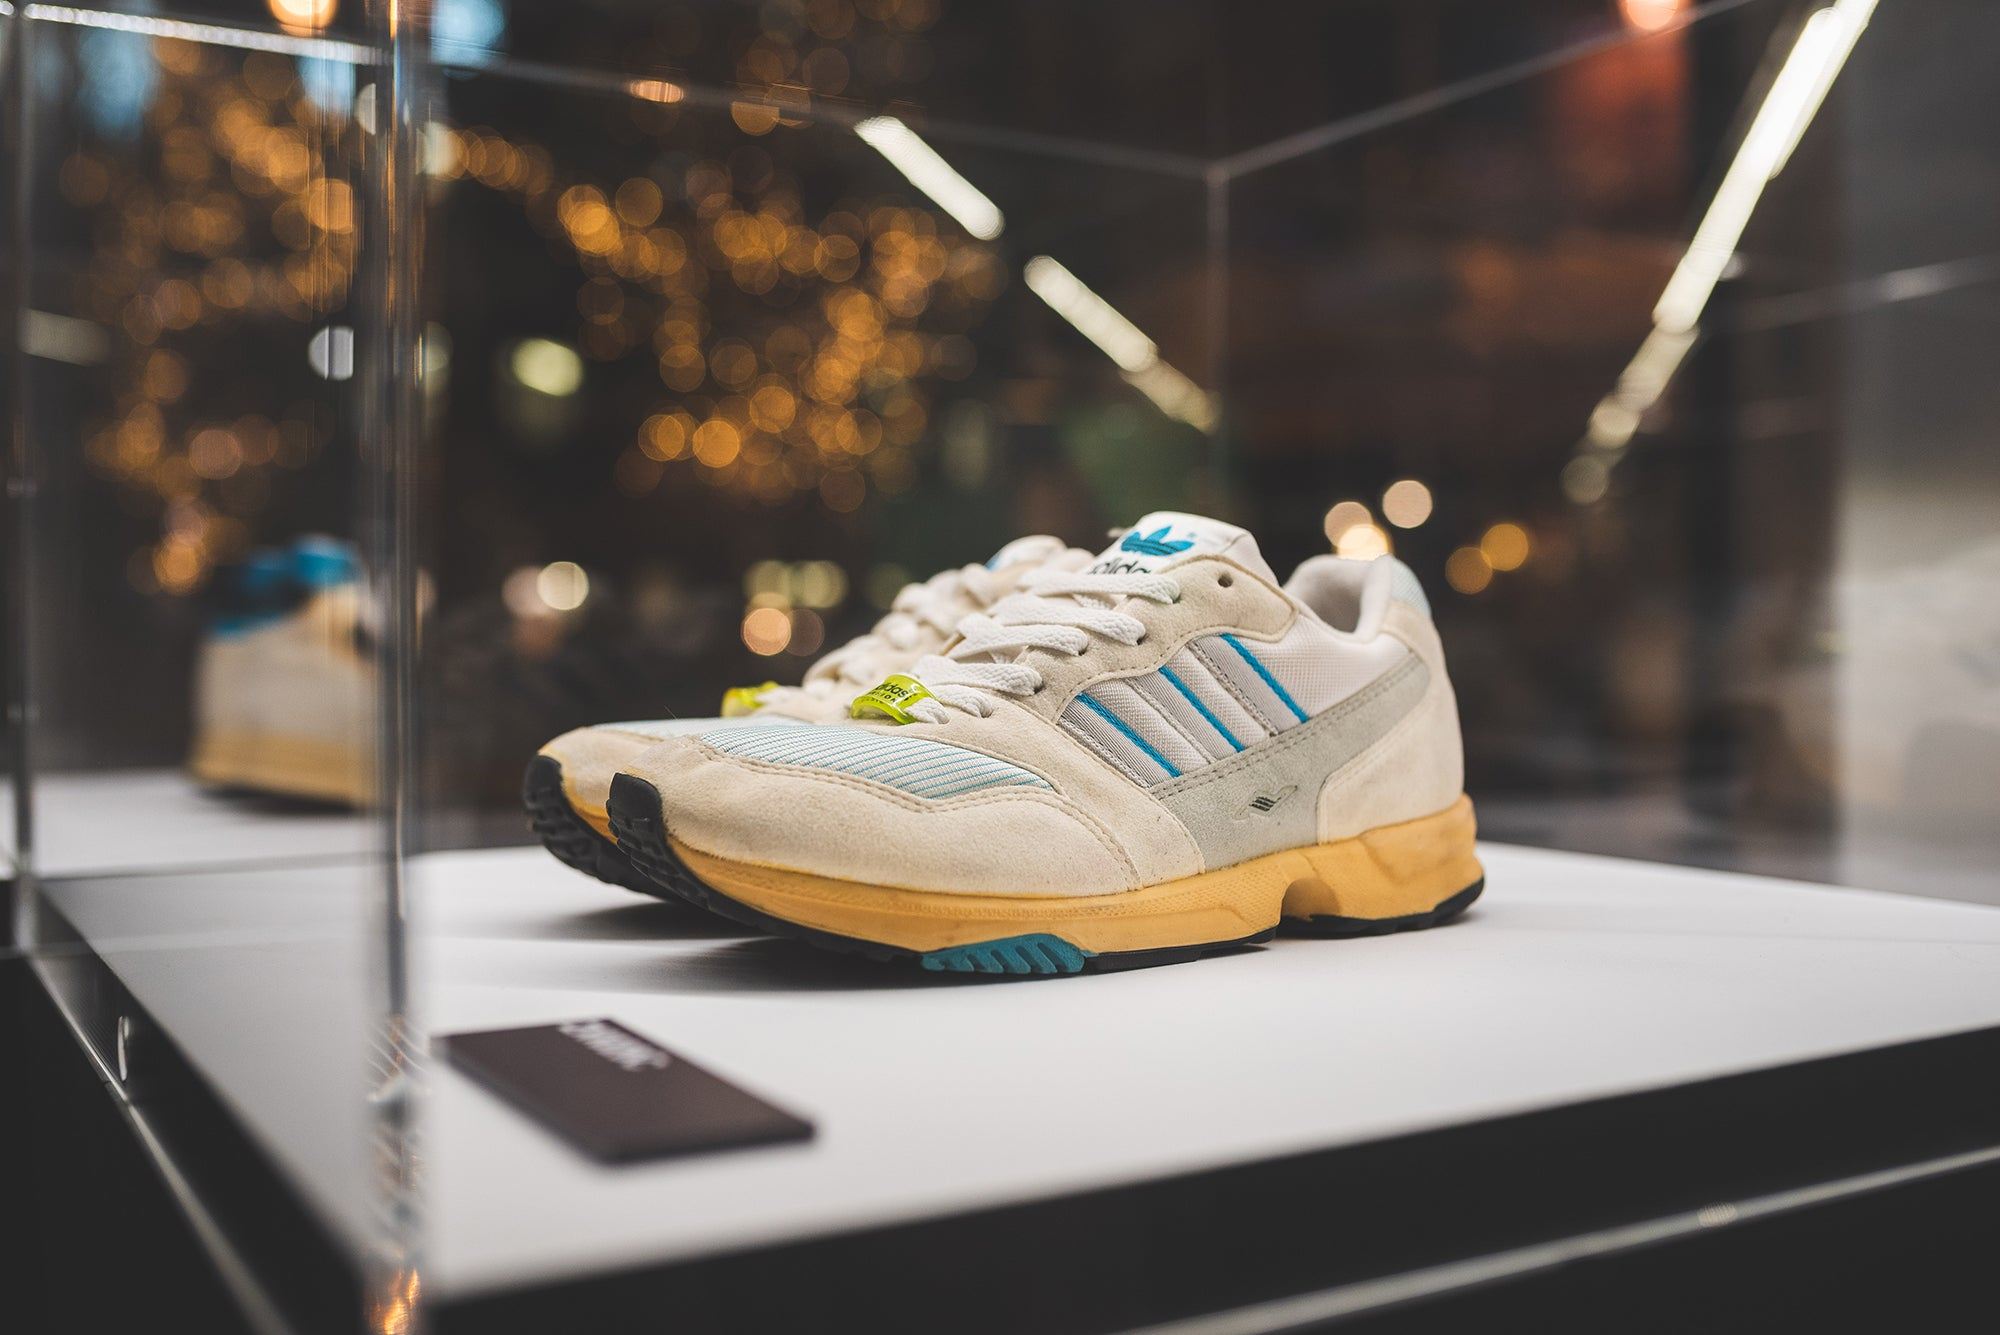 fa03c0a07 Check out some of our favourite pieces from the exhibition below. Thanks to  those behind the exhibition for the words above and to adidas for having us.